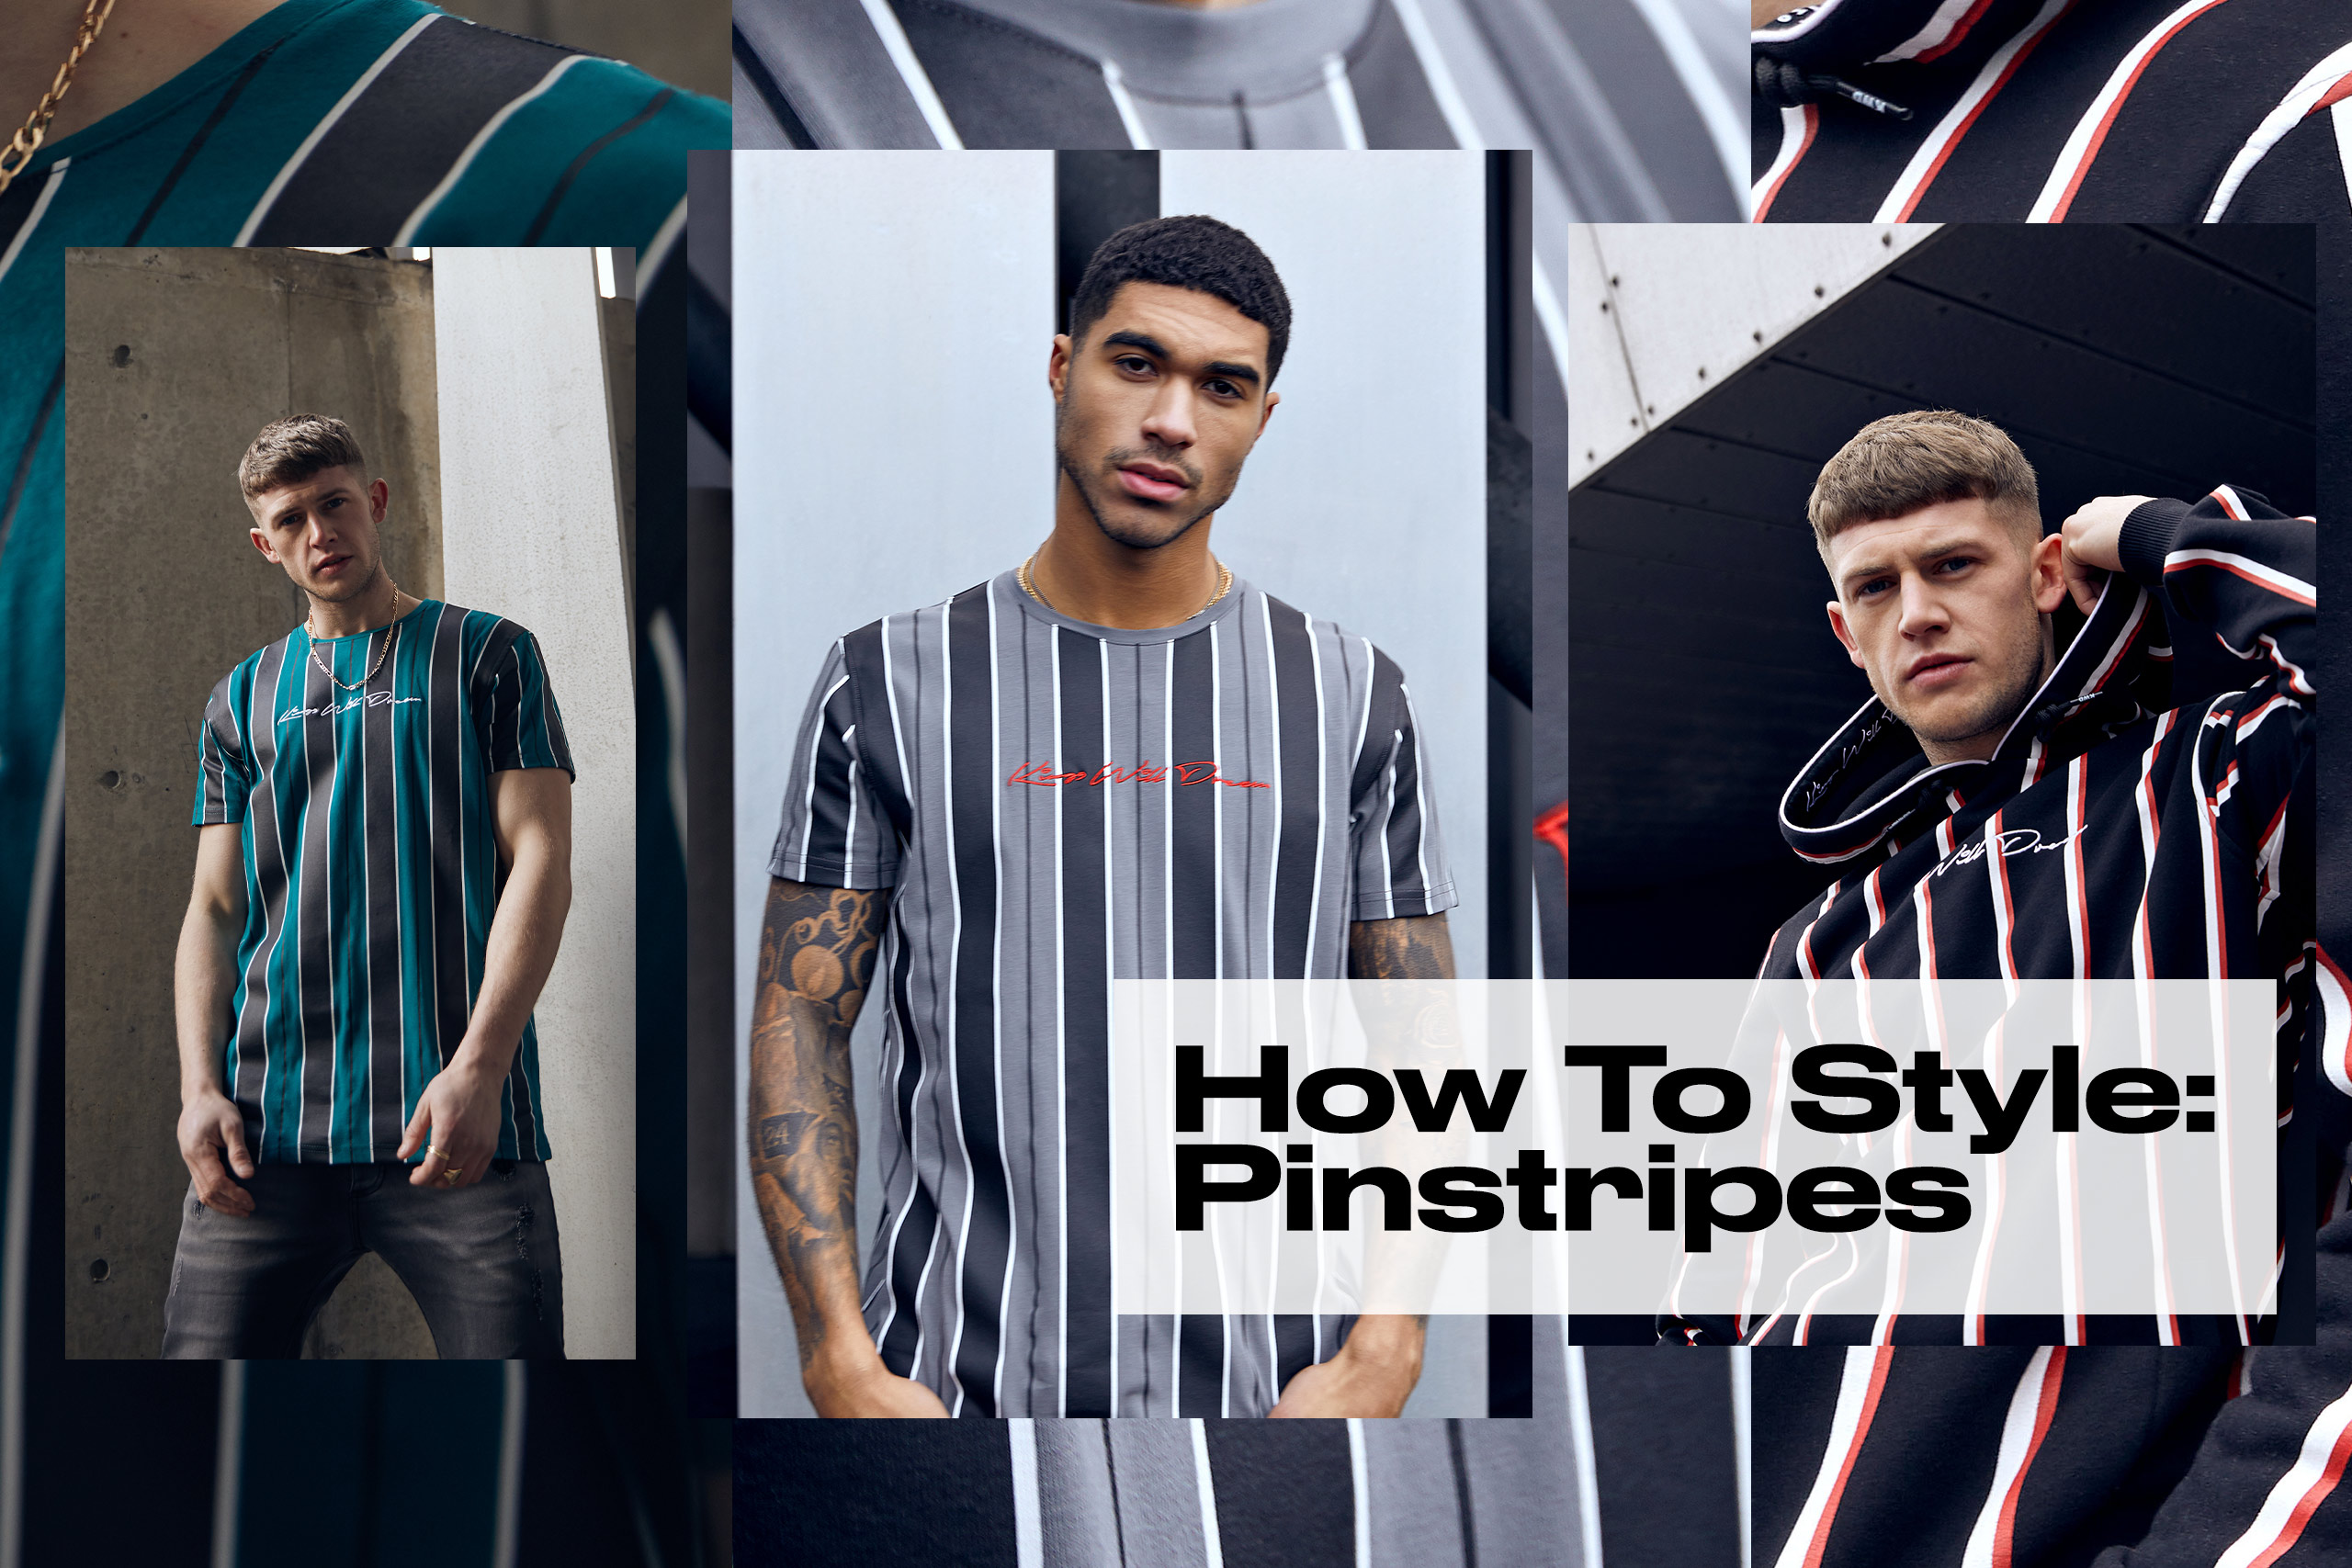 How To Style: Pinstripes